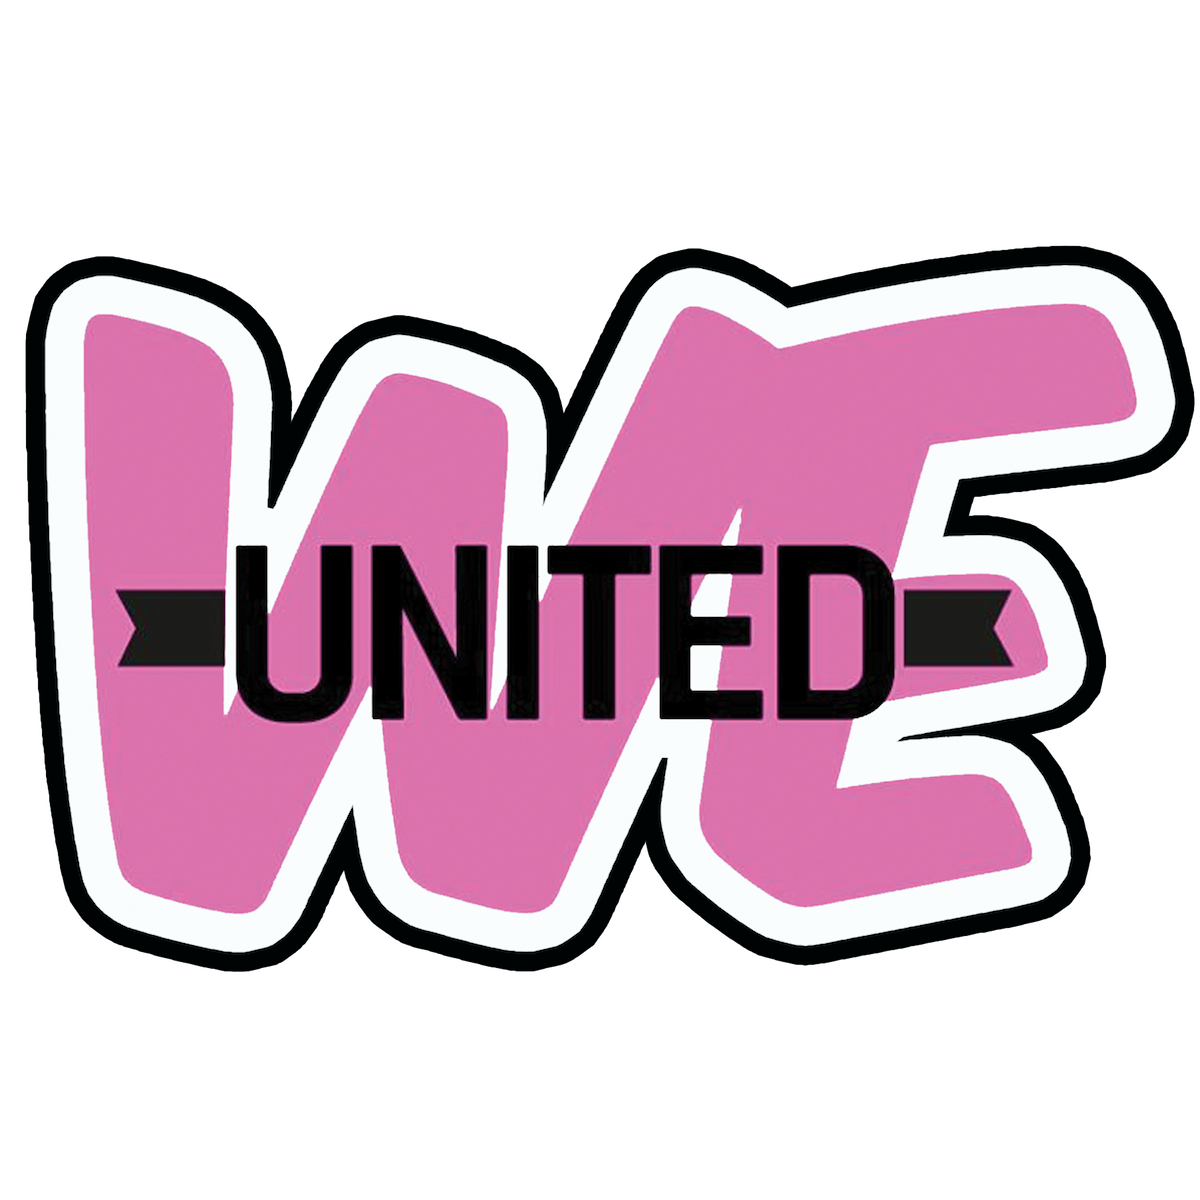 WEunited_logo_blackoutline_small.png